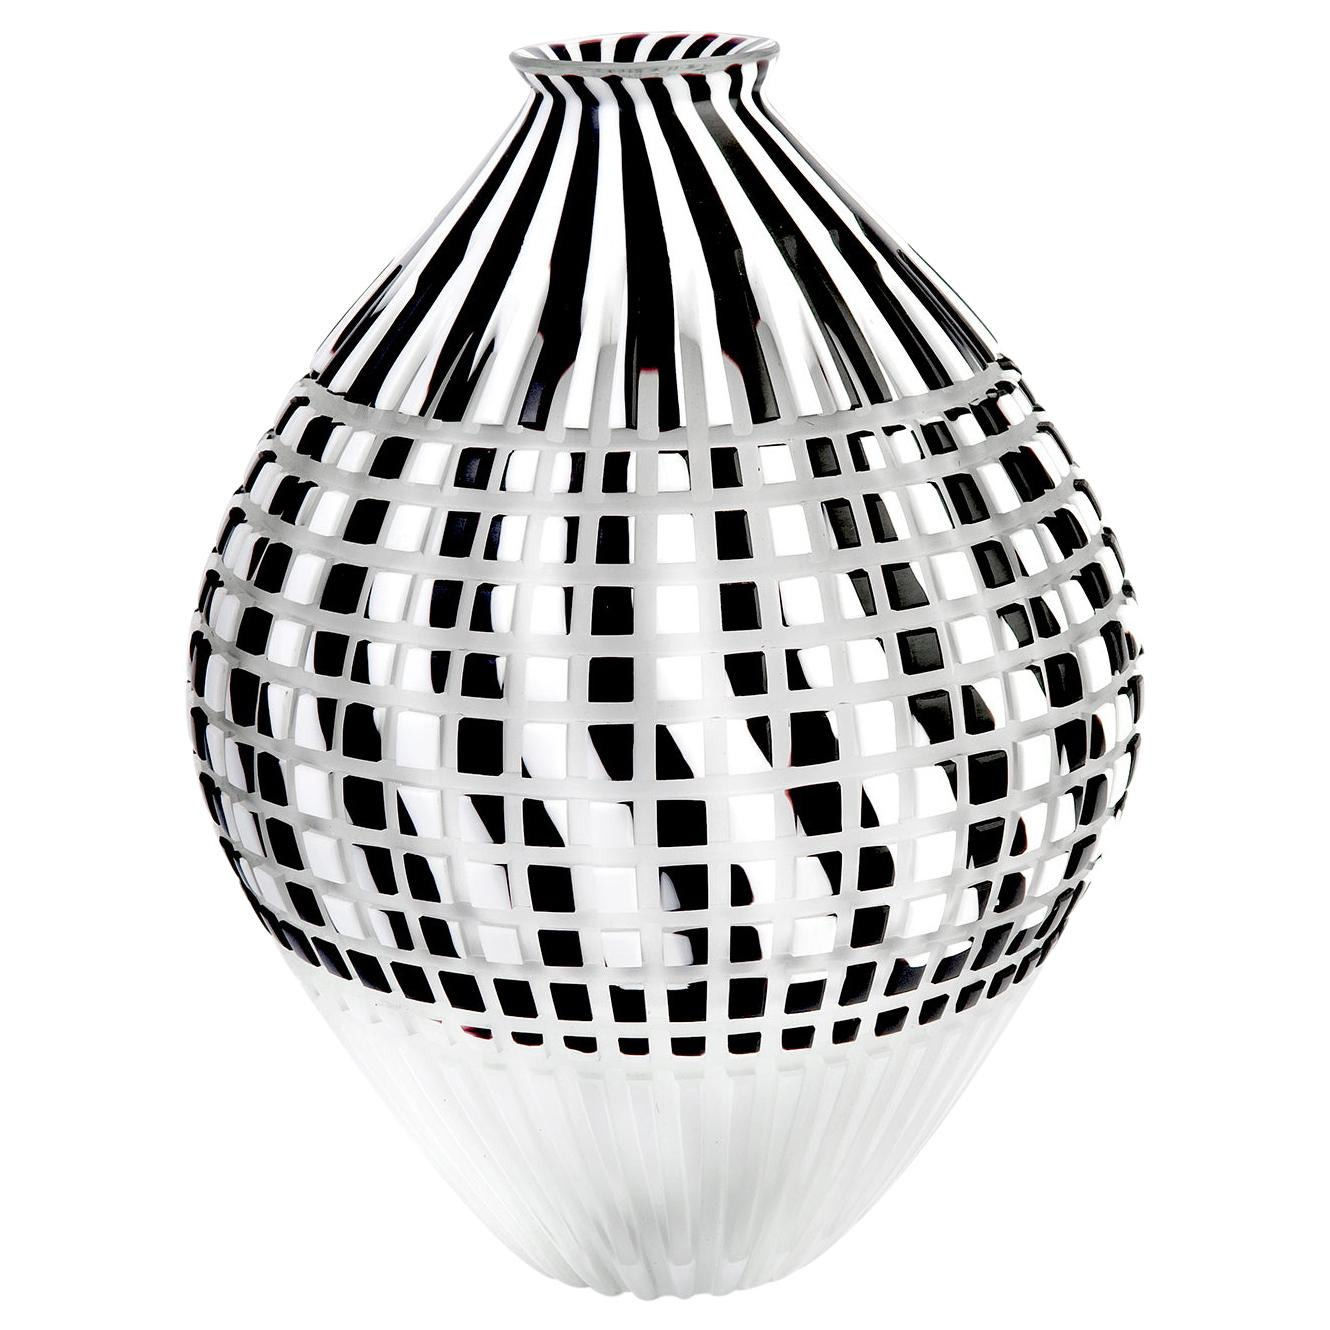 Murano Glass Object. Black and White Anfora with White Bottom, Textile Inspired